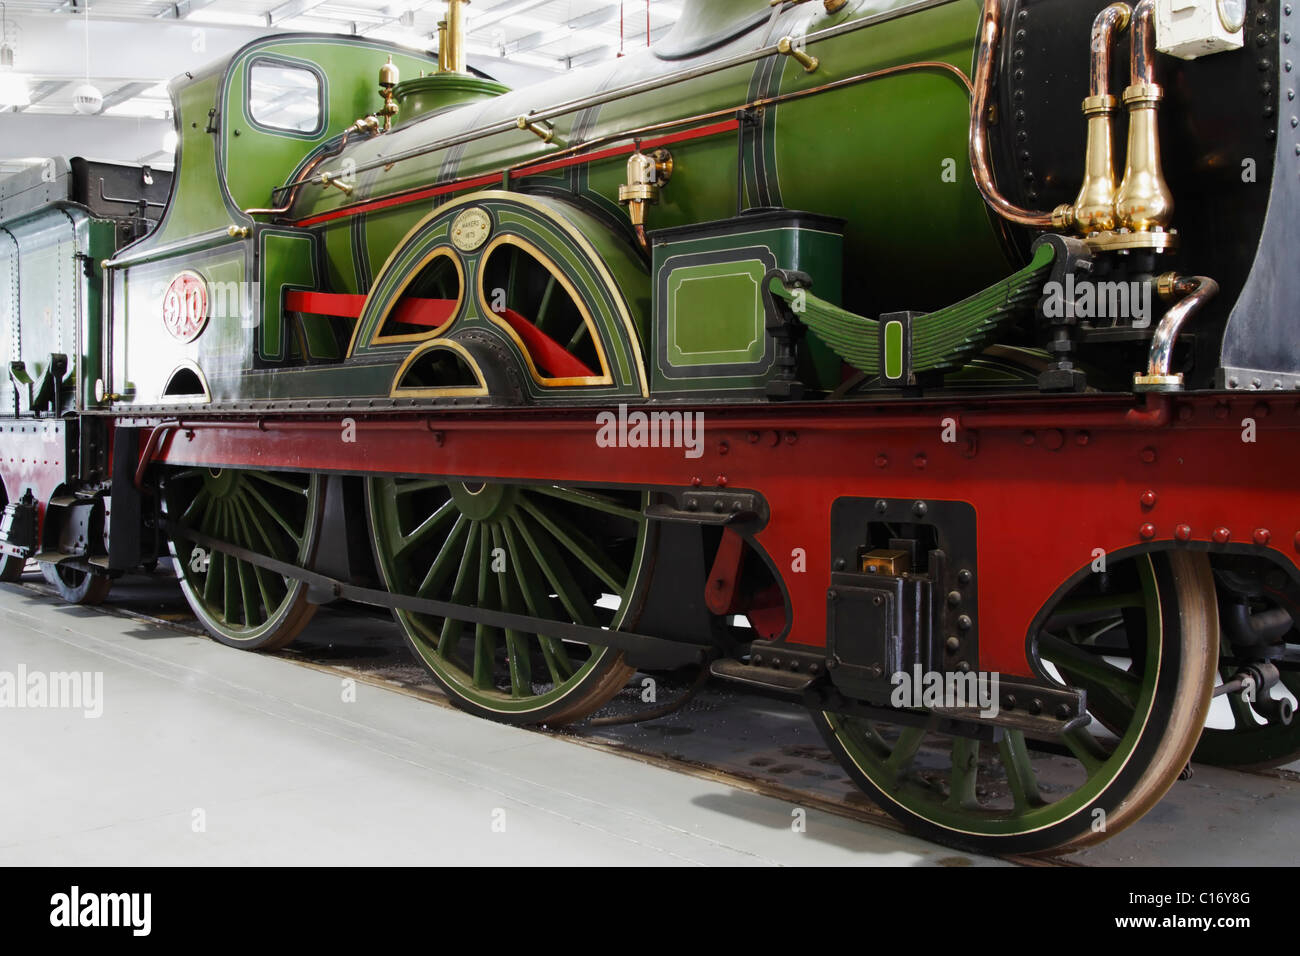 Class 2-4-0 locomotive No 910 inThe National Railway Museum at Shildon, County Durham, England, UK - Stock Image